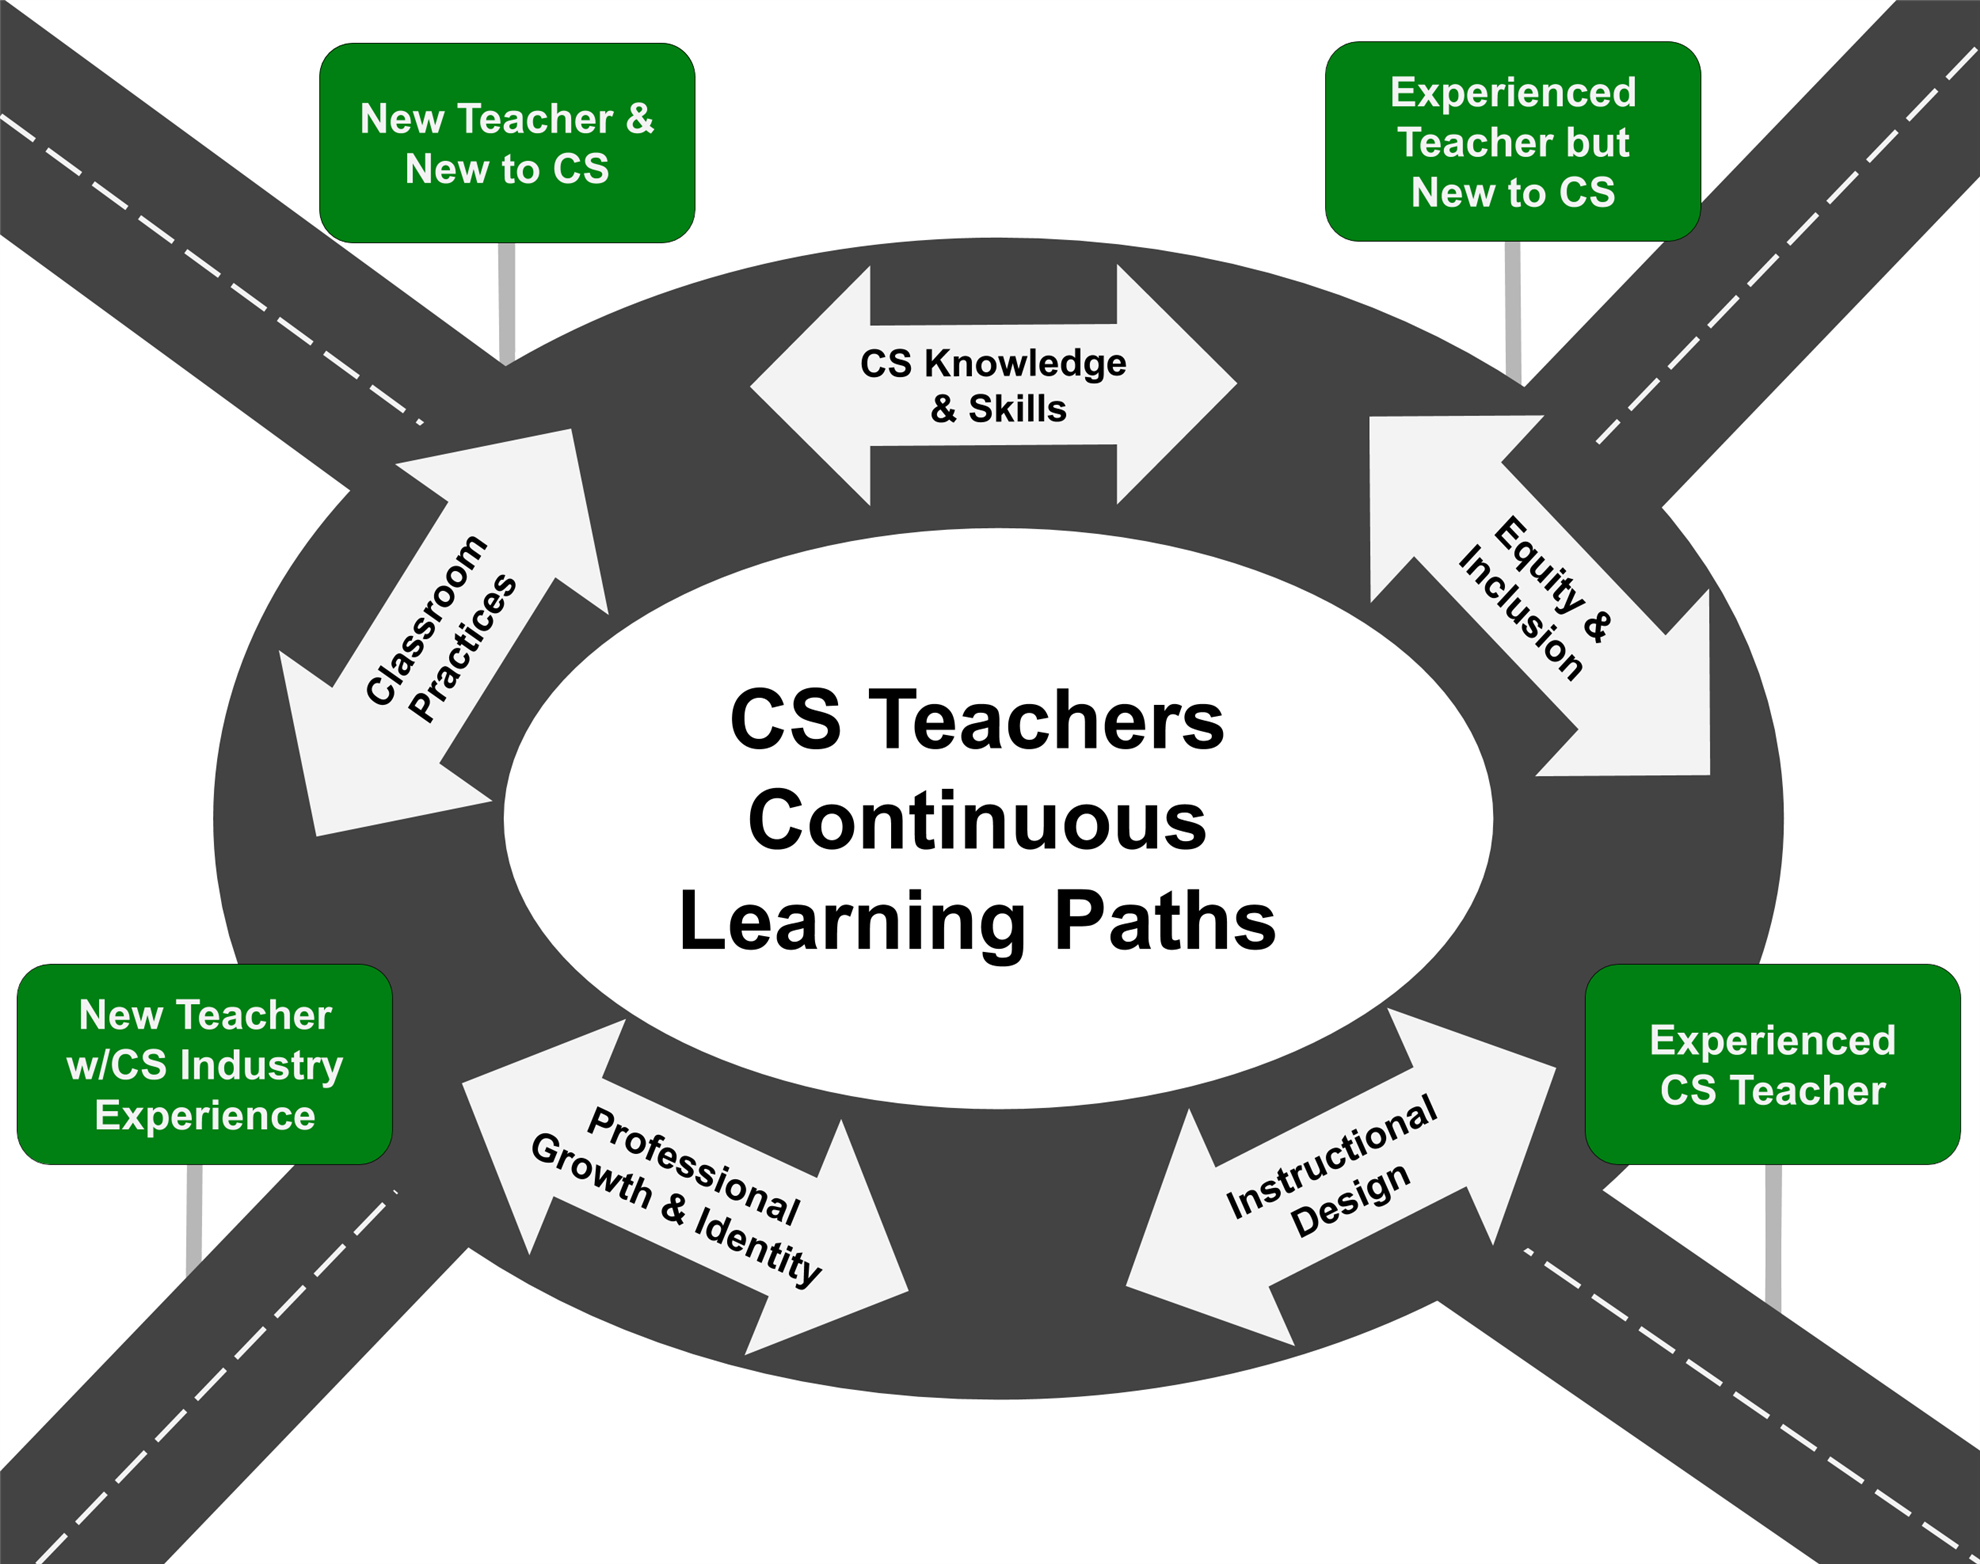 CS Teachers Continuous Learning Pathways